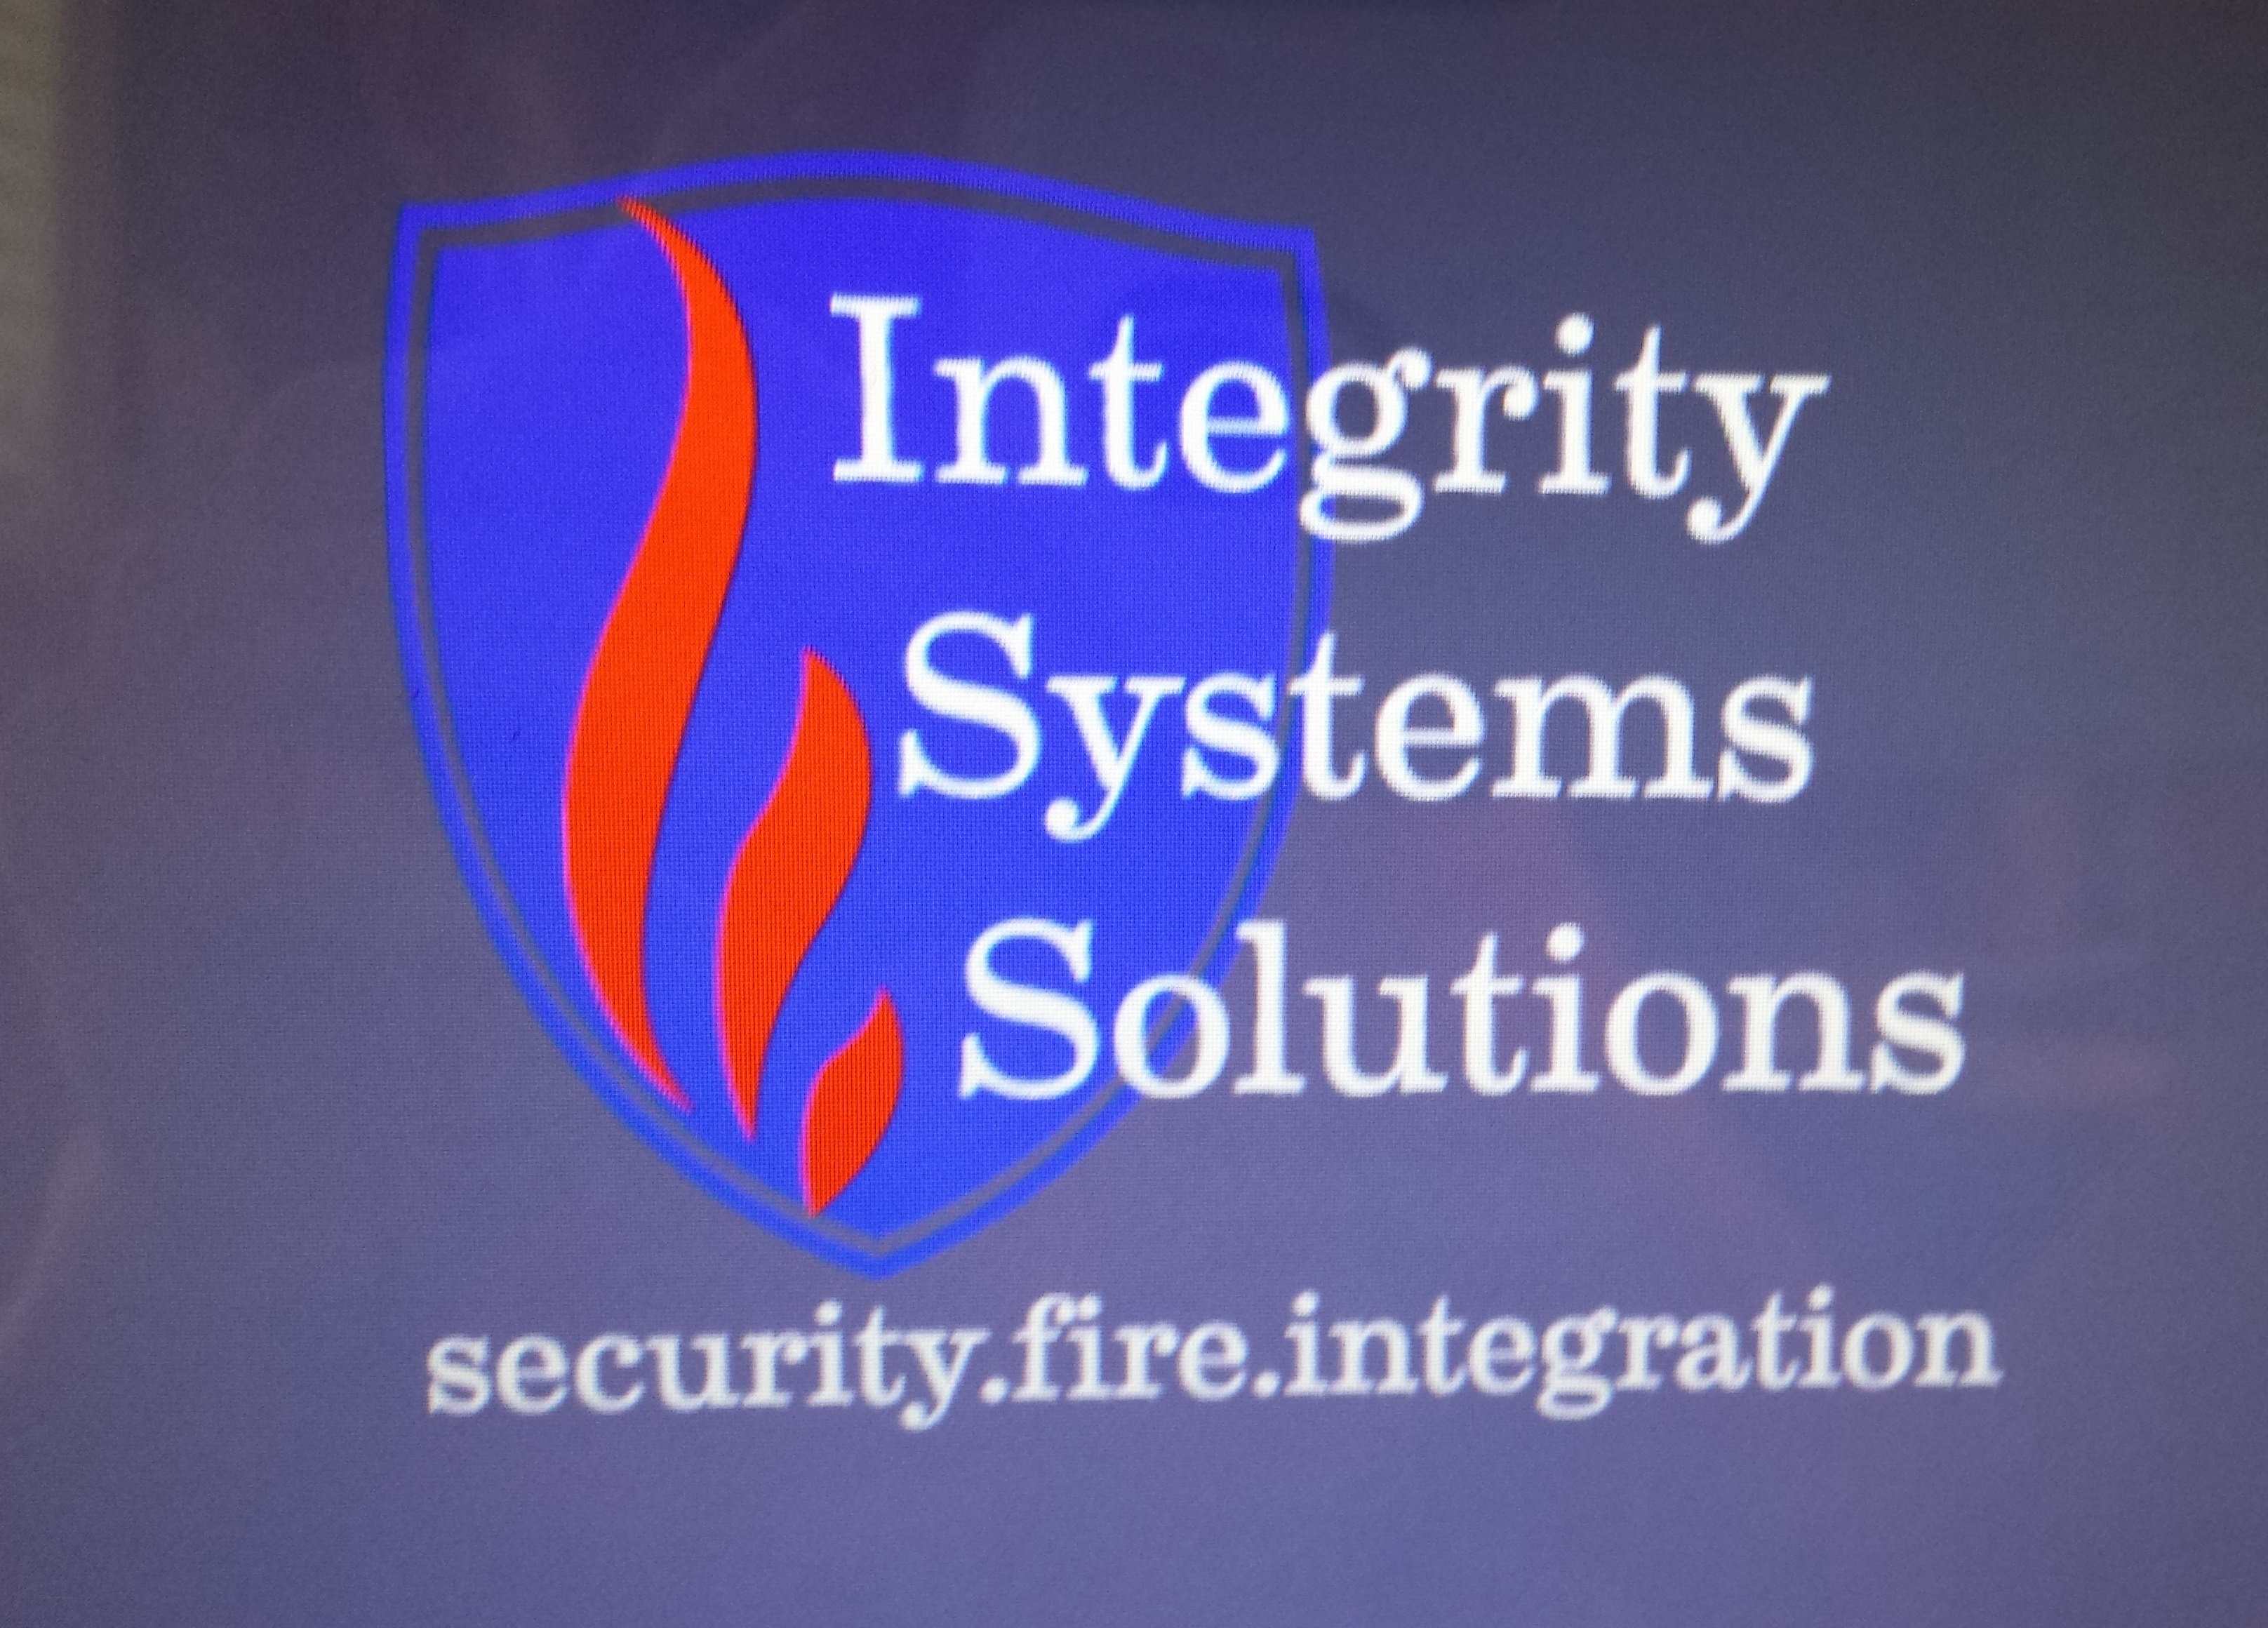 Integrity Systems Solutions